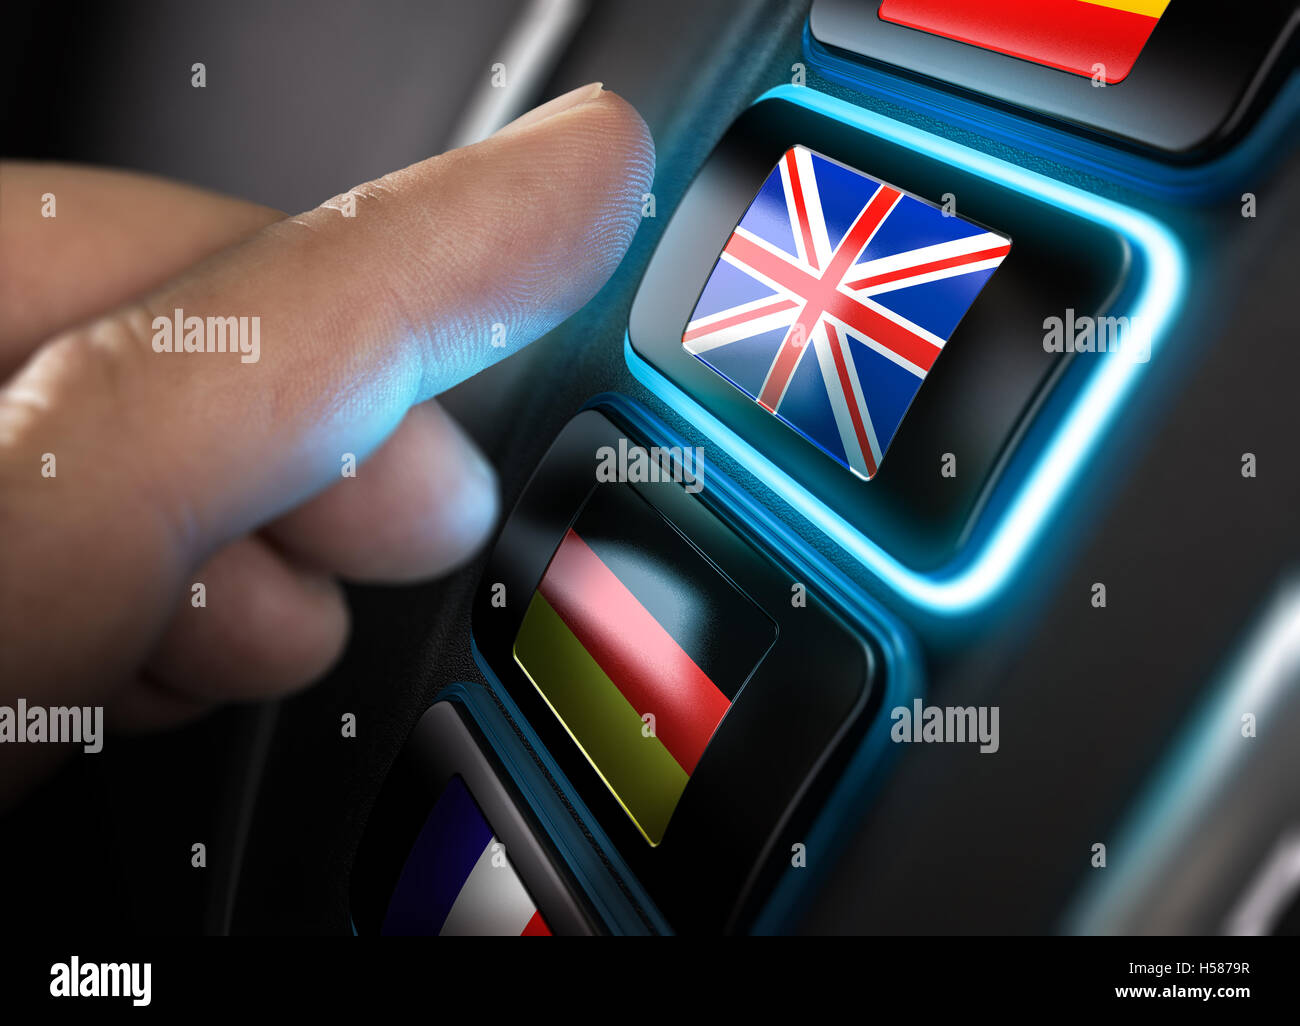 Finger about to press an english translation button on a conceptual language dashboard. Composite between an image - Stock Image